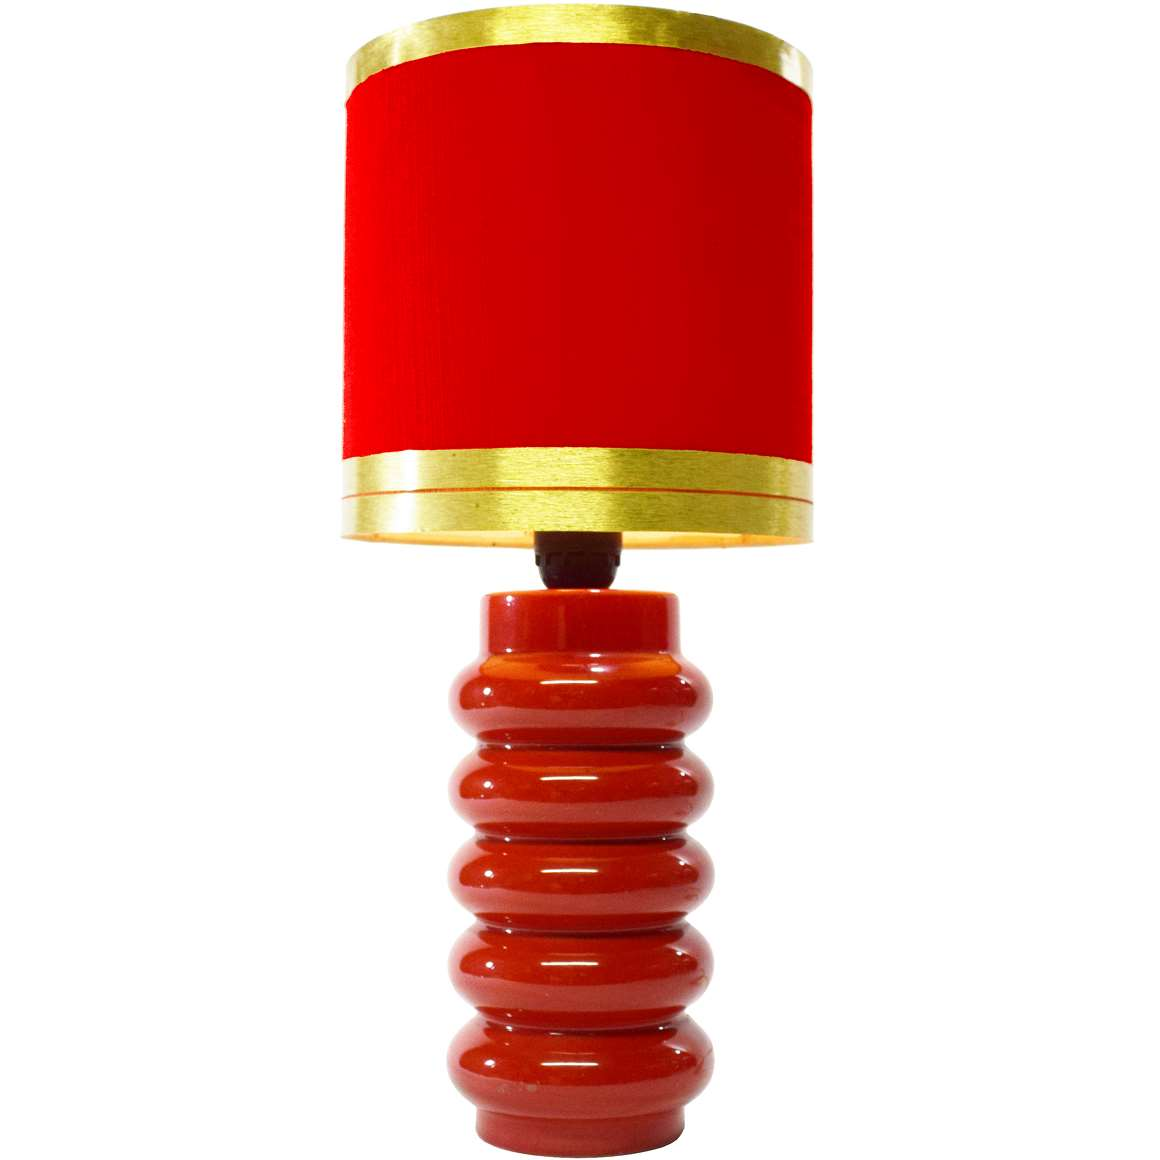 Red And White Table Lamp 1970s Red Table Lamp Vintage Info All About Vintage